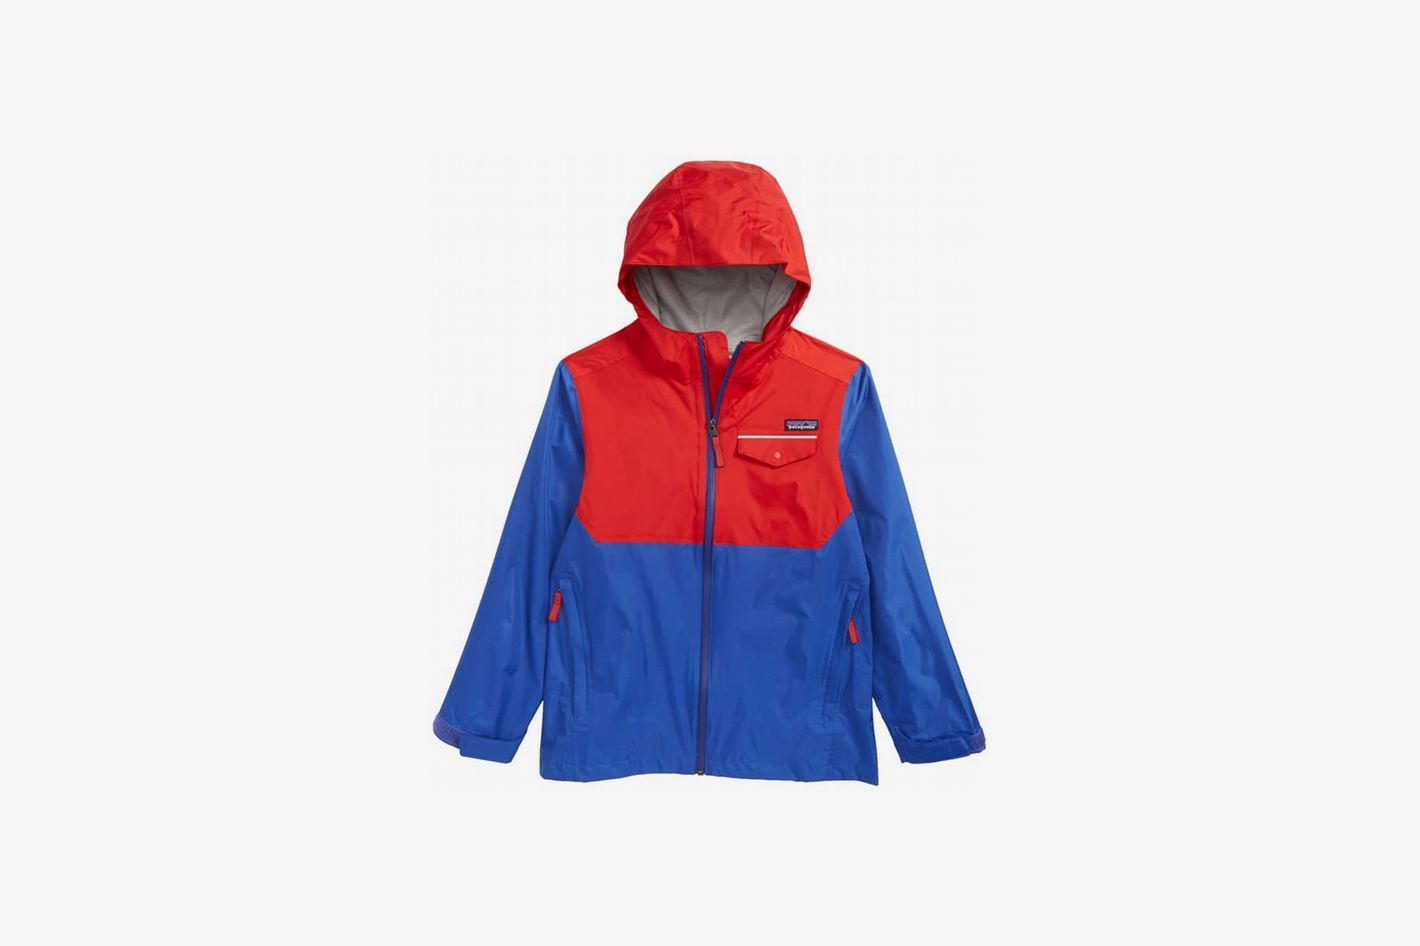 5aa83ffac 16 Patagonia Kids  Jackets on Sale at Nordstrom  2019